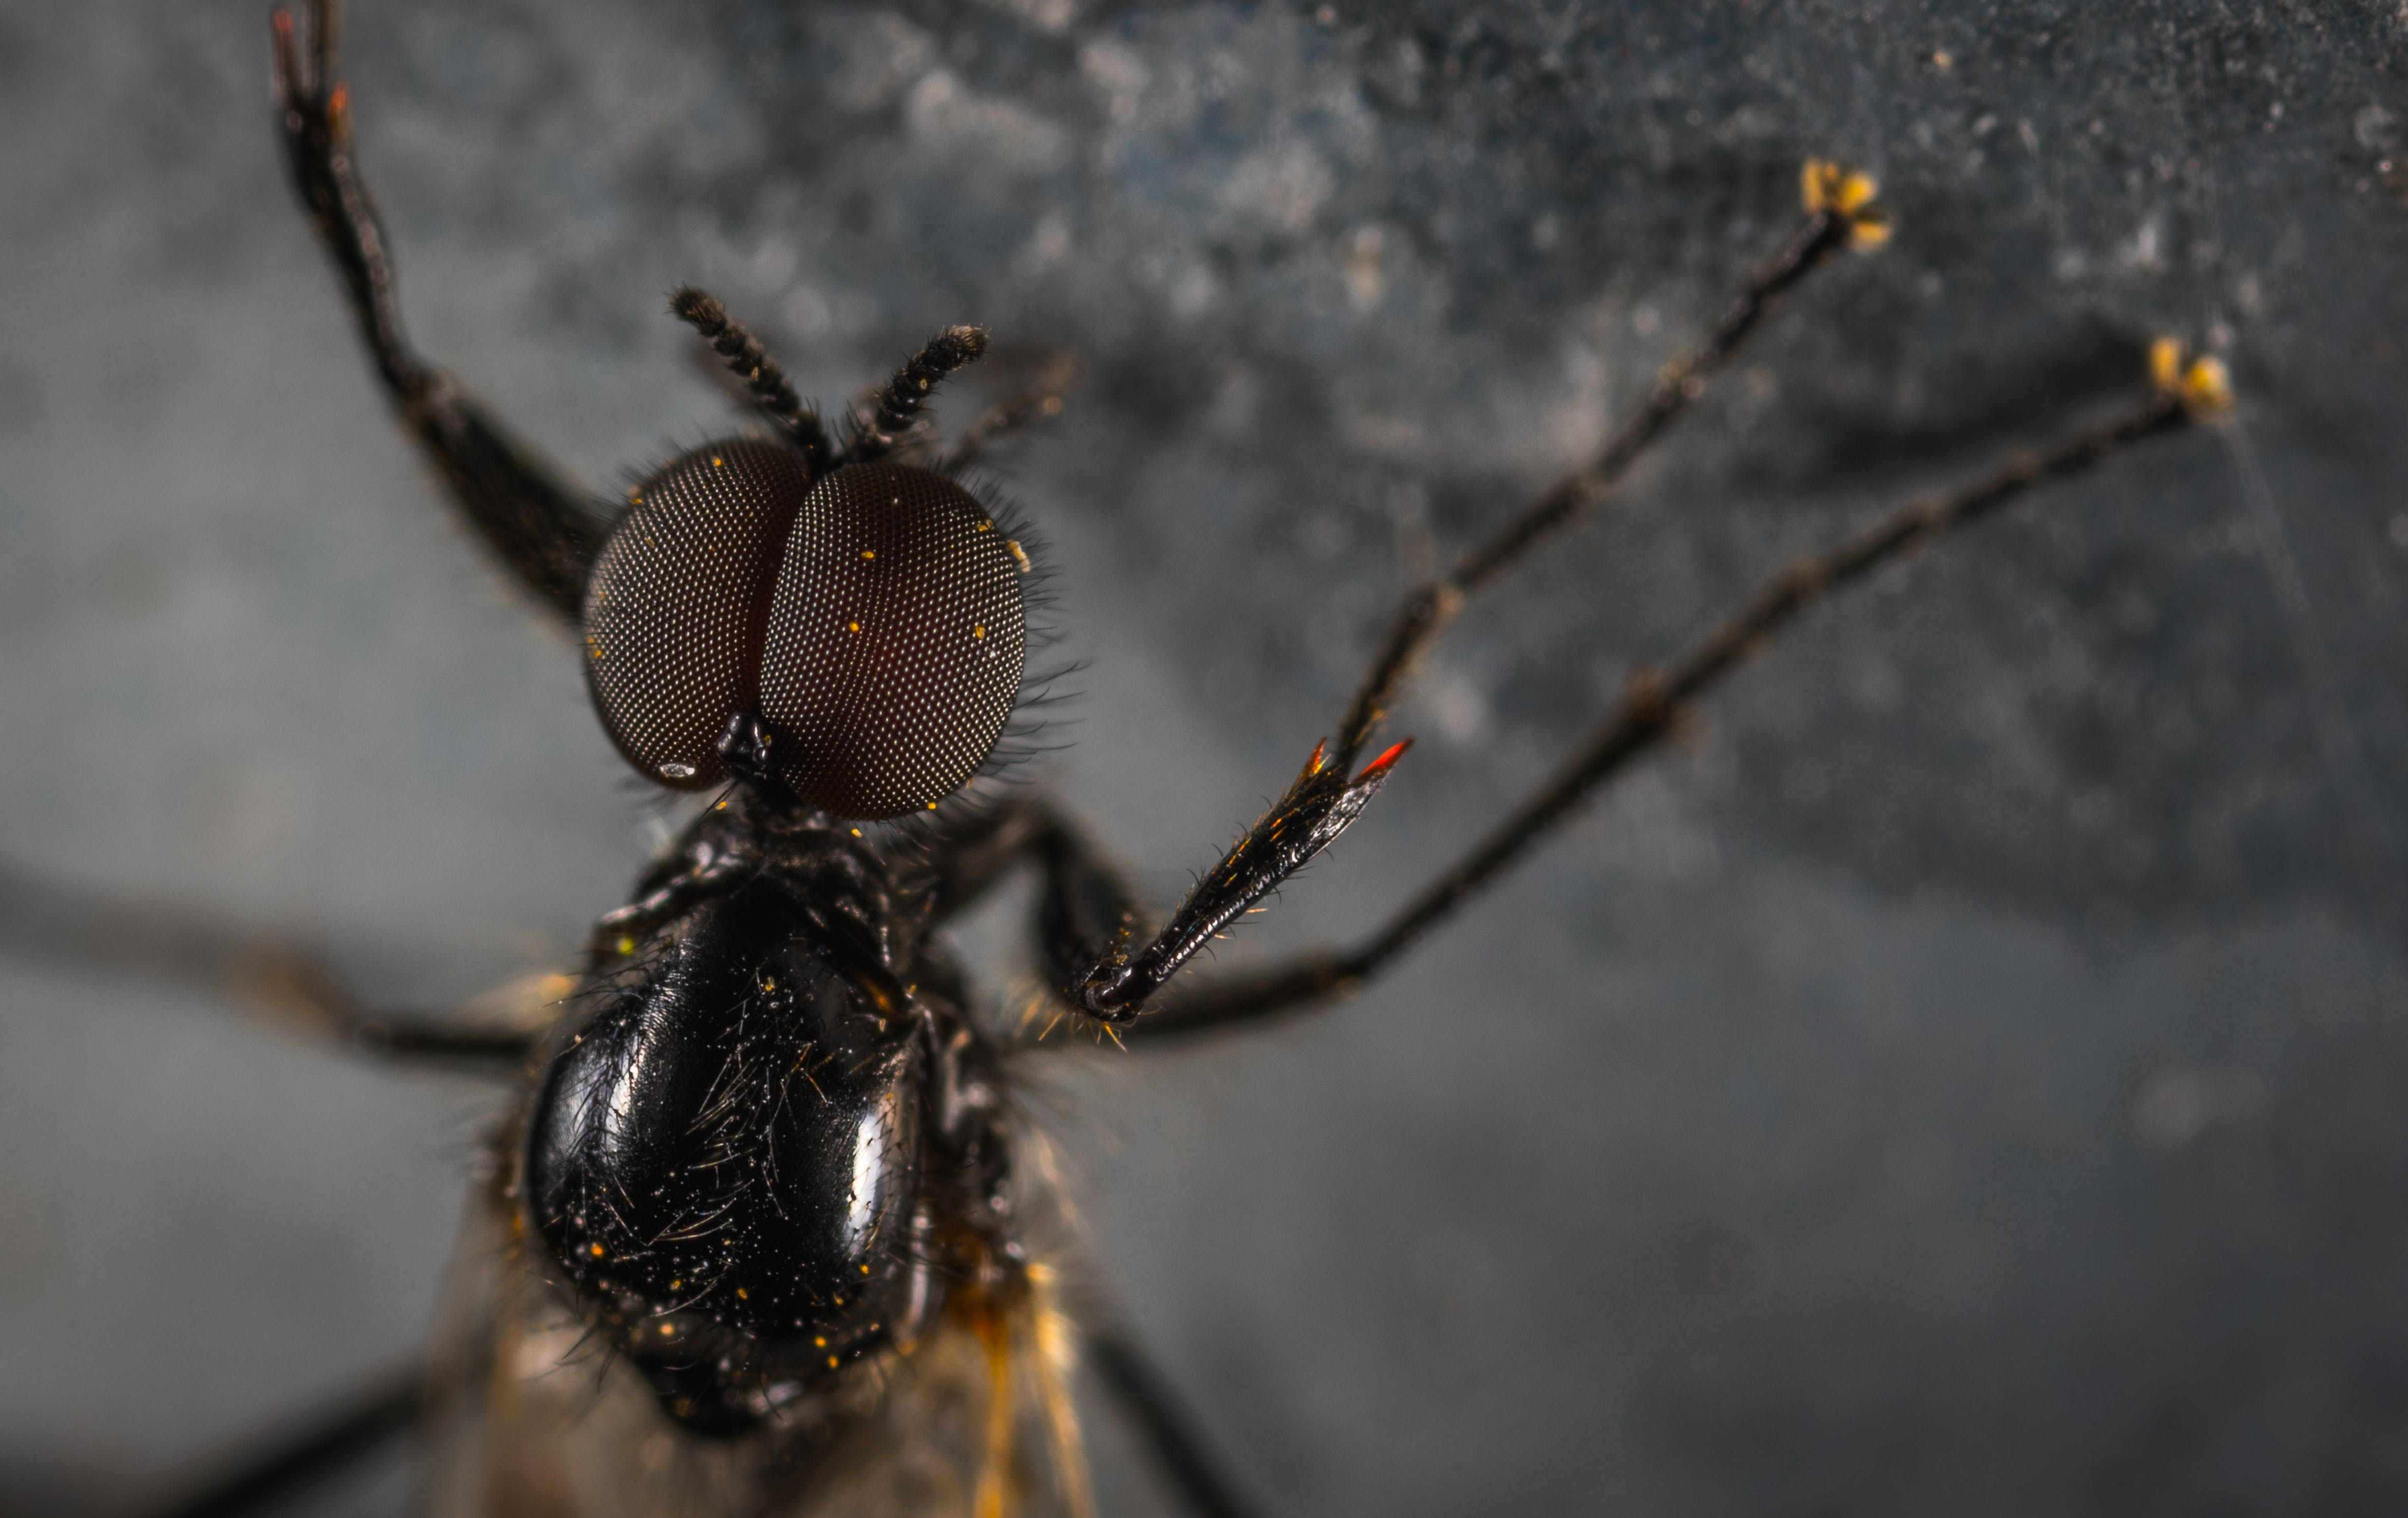 Close Up Photo Black Housefly